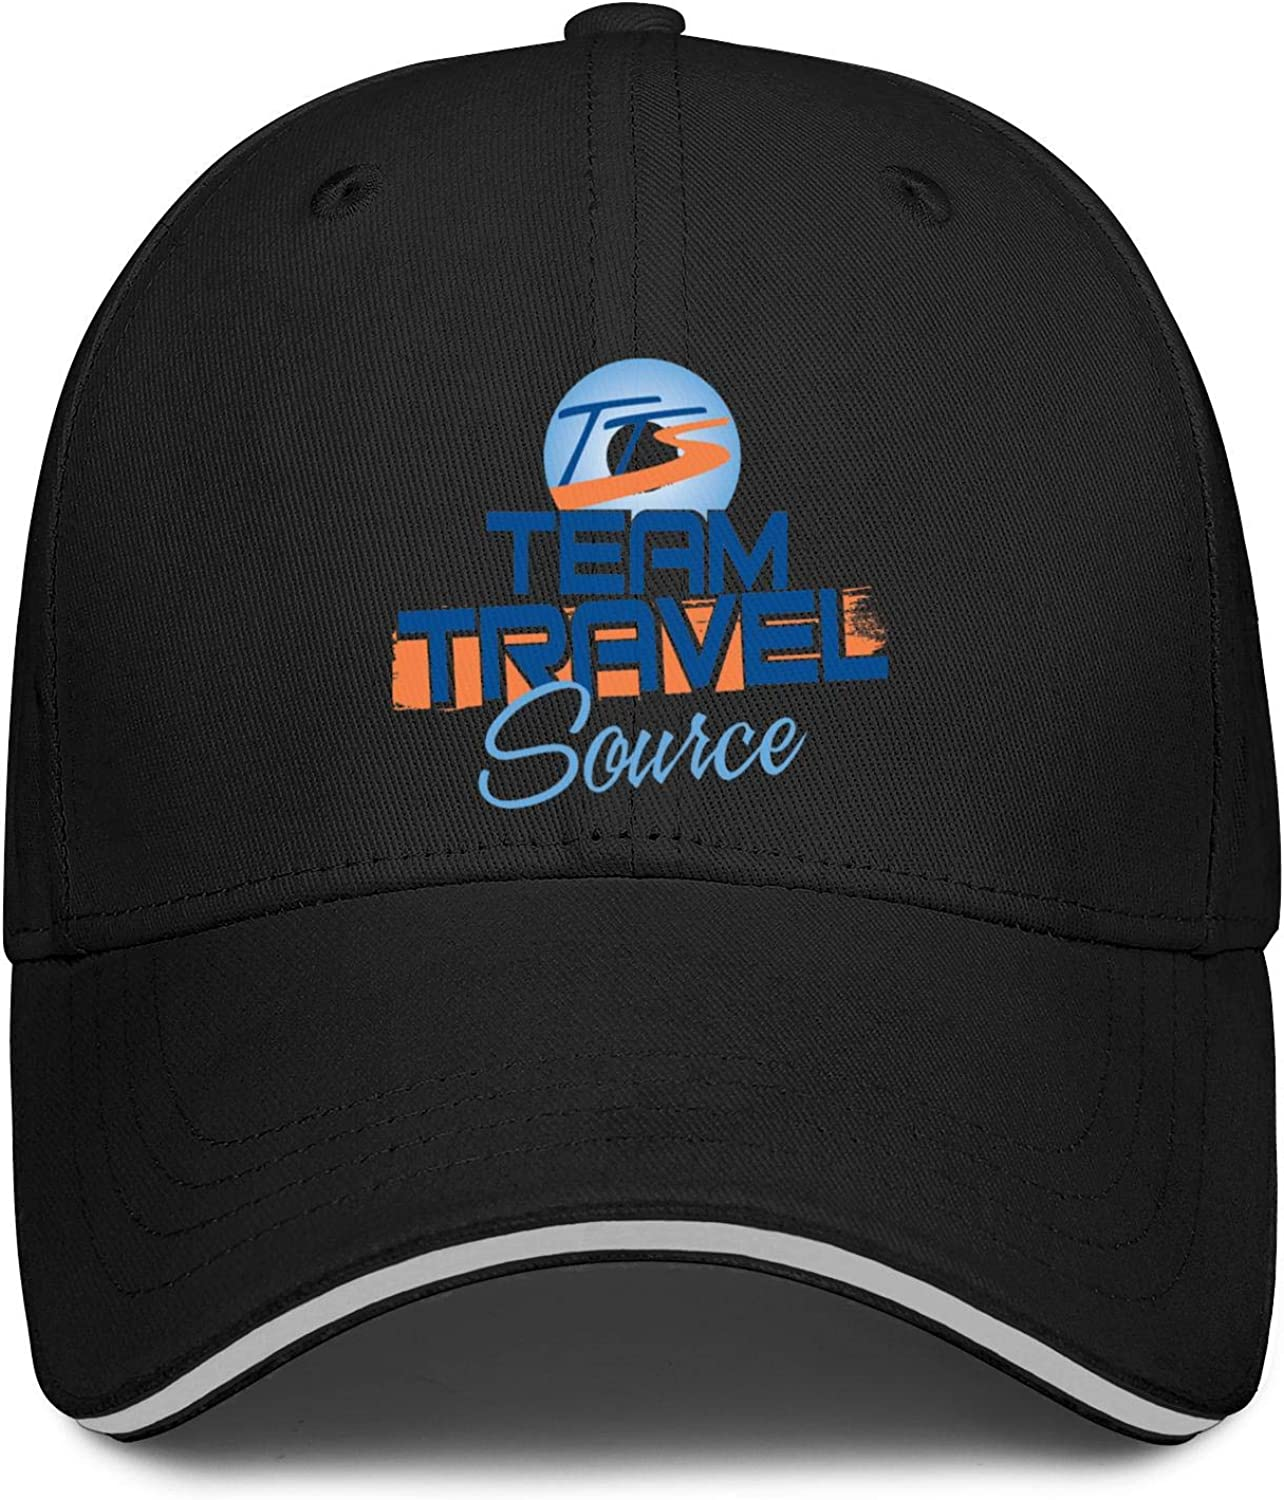 TylerLiu Baseball Cap Virginia Beach TTS Snapbacks Truker Hats Unisex Adjustable Fashion Cap